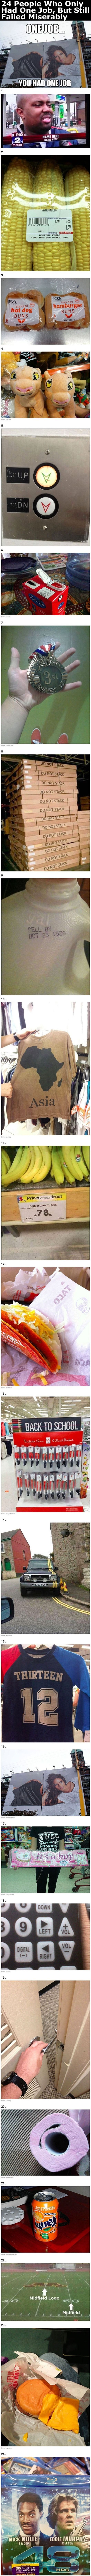 You had one job to do. 24 world class fails.